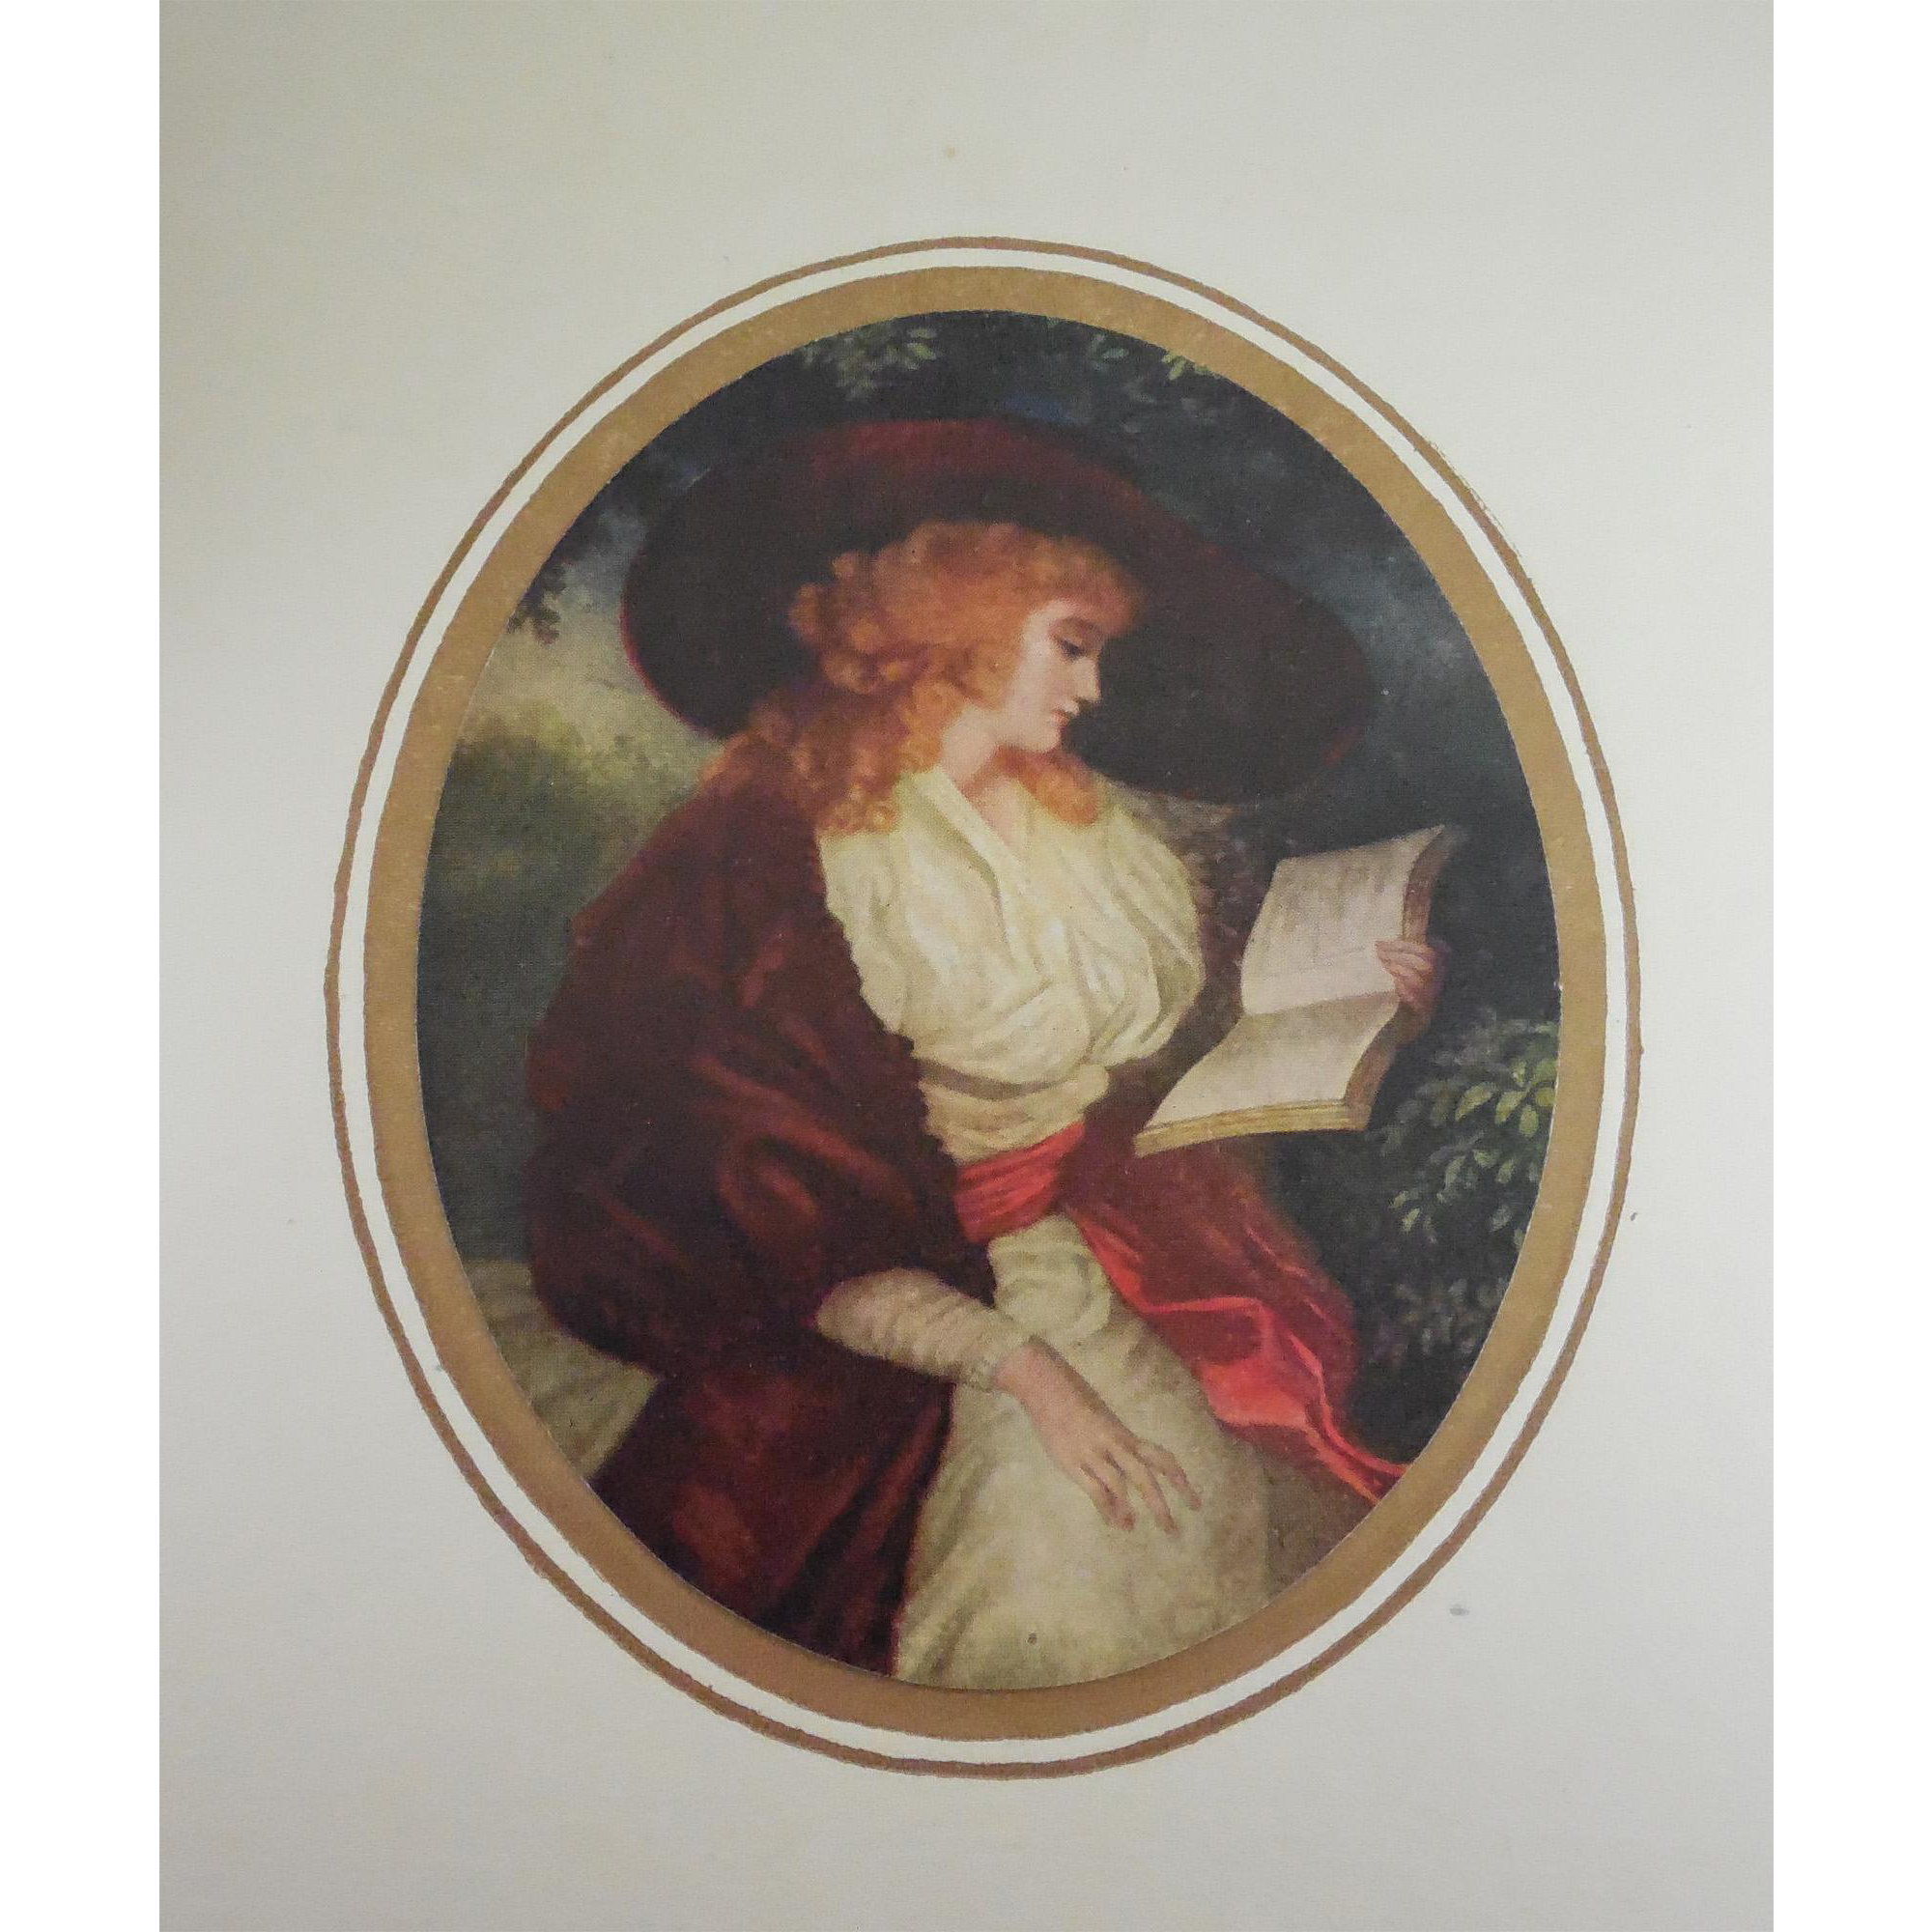 Antique Print Delia In Country by Morland - Oval Print Affixed to Paper